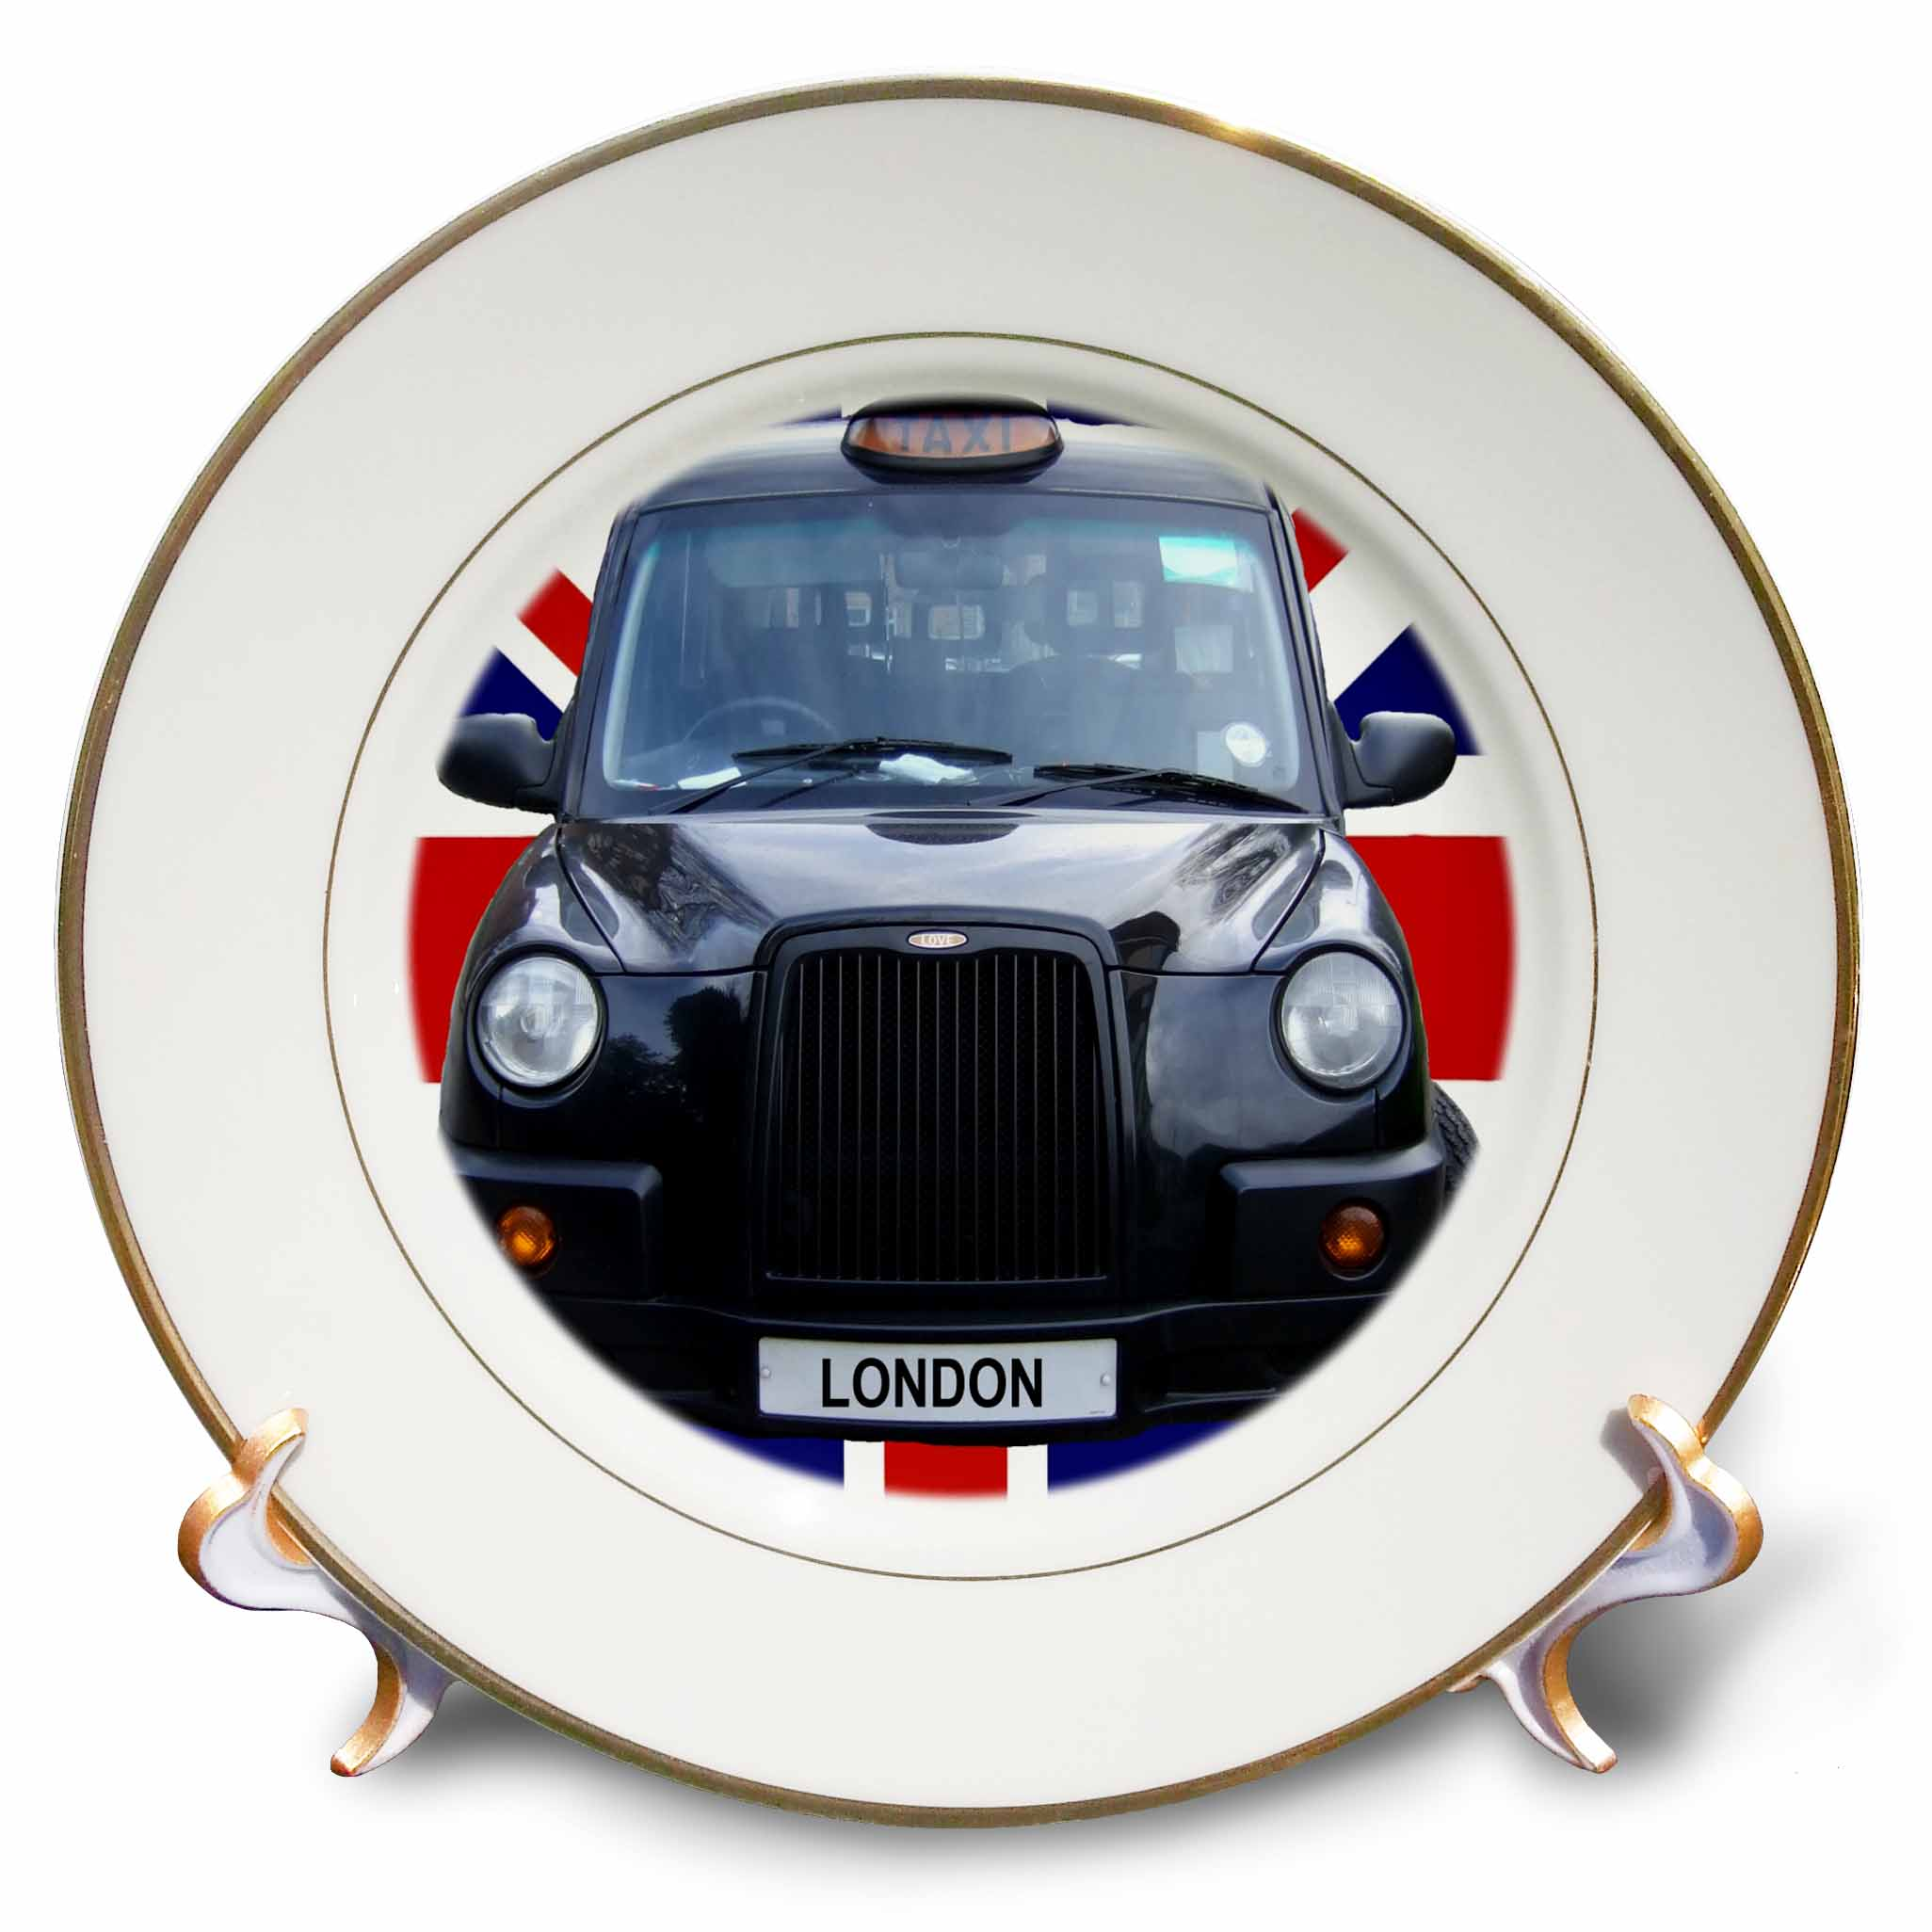 3dRose London Black Taxi Cab on British Flag union Jack background - UK Great Britain United Kingdom Travel, Porcelain Plate, 8-inch